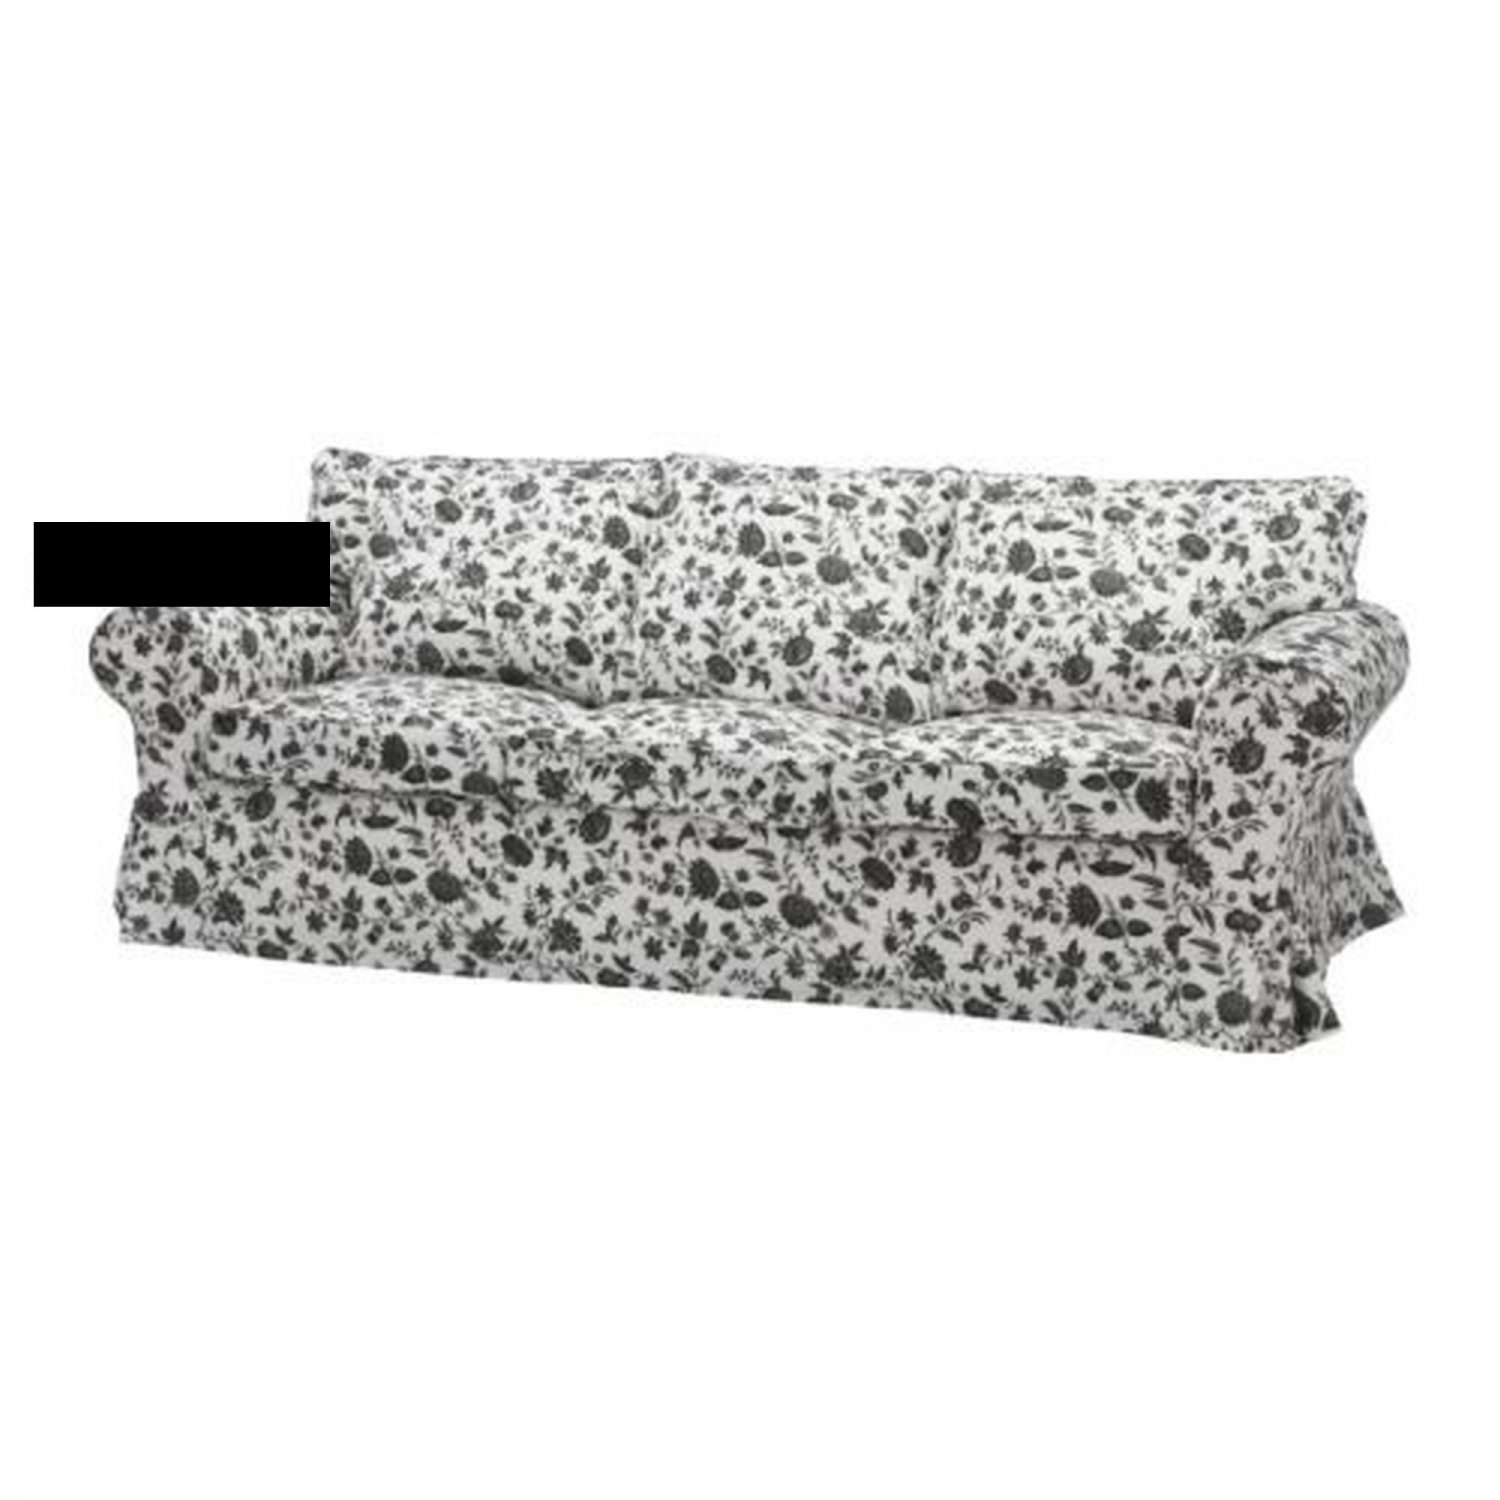 ikea ektorp 3 seat sofa slipcover cover hovby black white floral bezug. Black Bedroom Furniture Sets. Home Design Ideas